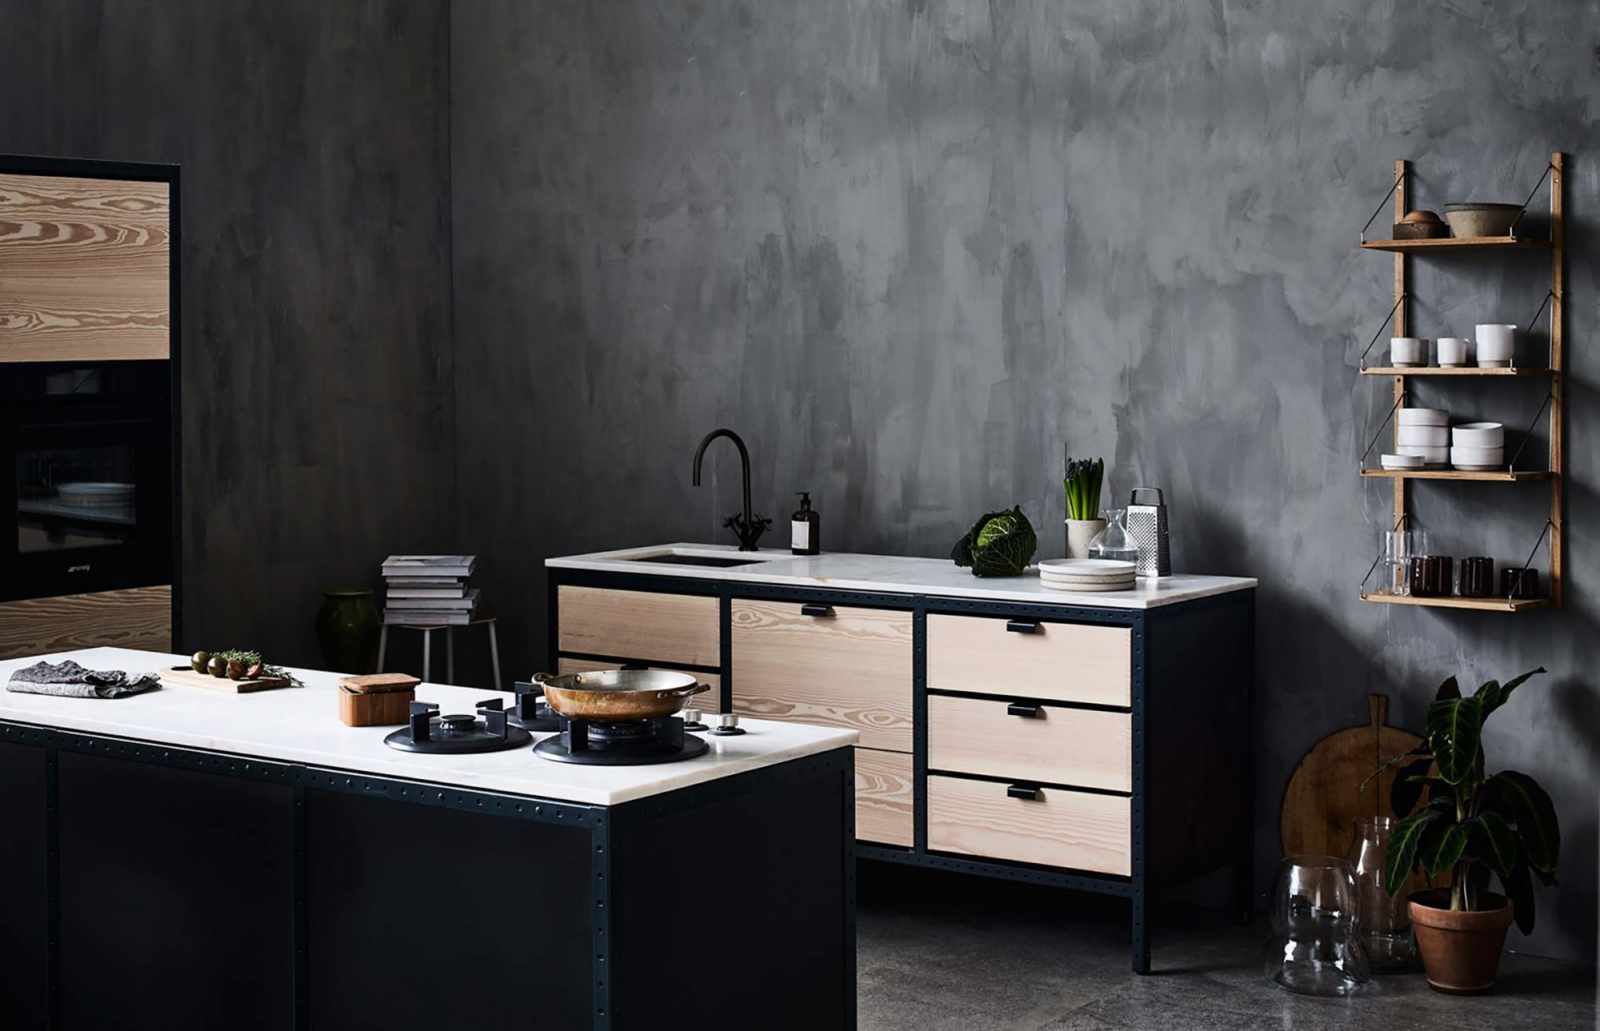 The kitchen can be used as kitchen island as well